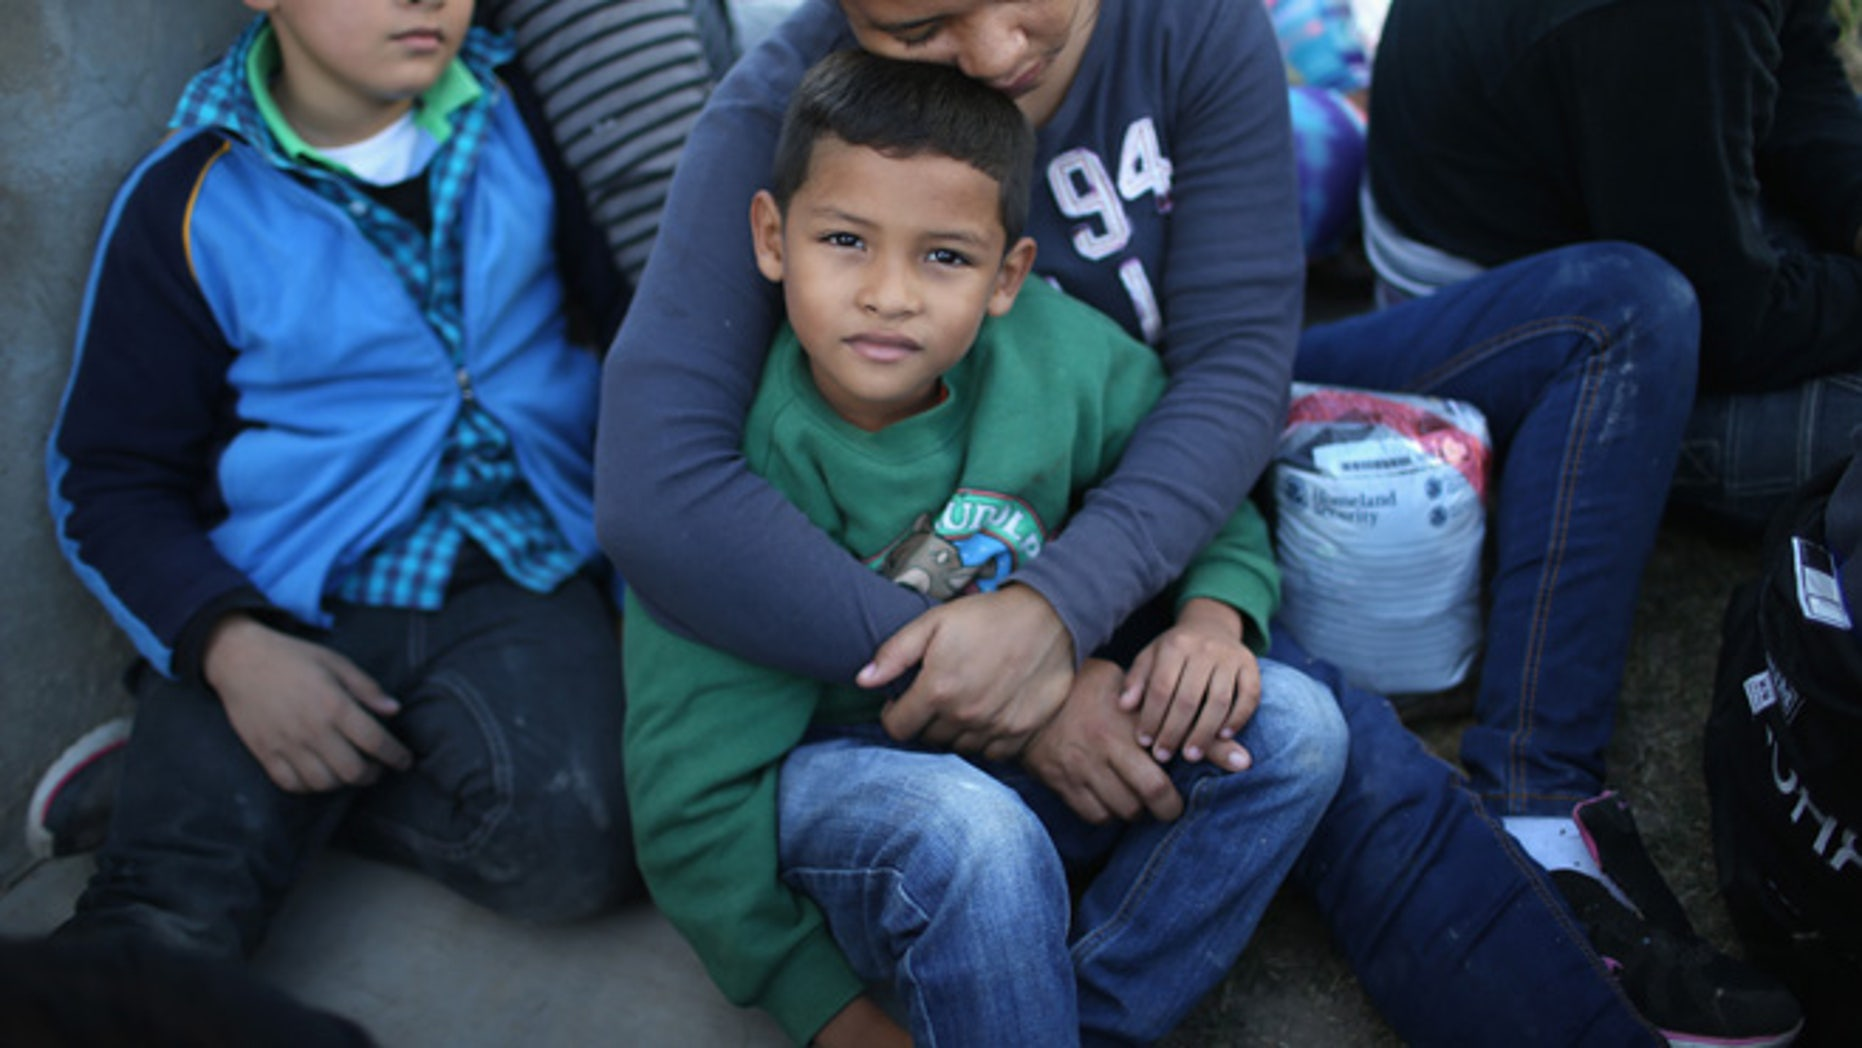 RIO GRANDE CITY, TX - DECEMBER 08:  A Honduran mother holds her son, 7, after she turned her family in to U.S. Border Patrol agents on December 8, 2015 near Rio Grande City, Texas. They had just illegally crossed the U.S.-Mexico border into Texas. She said she brought her two daughters to escape violence in the Central American country. The number of migrant families and unaccompanied minors has again surged in recent months, even as the total number of illegal crossings nationwide has gone down over the previous year.  (Photo by John Moore/Getty Images)